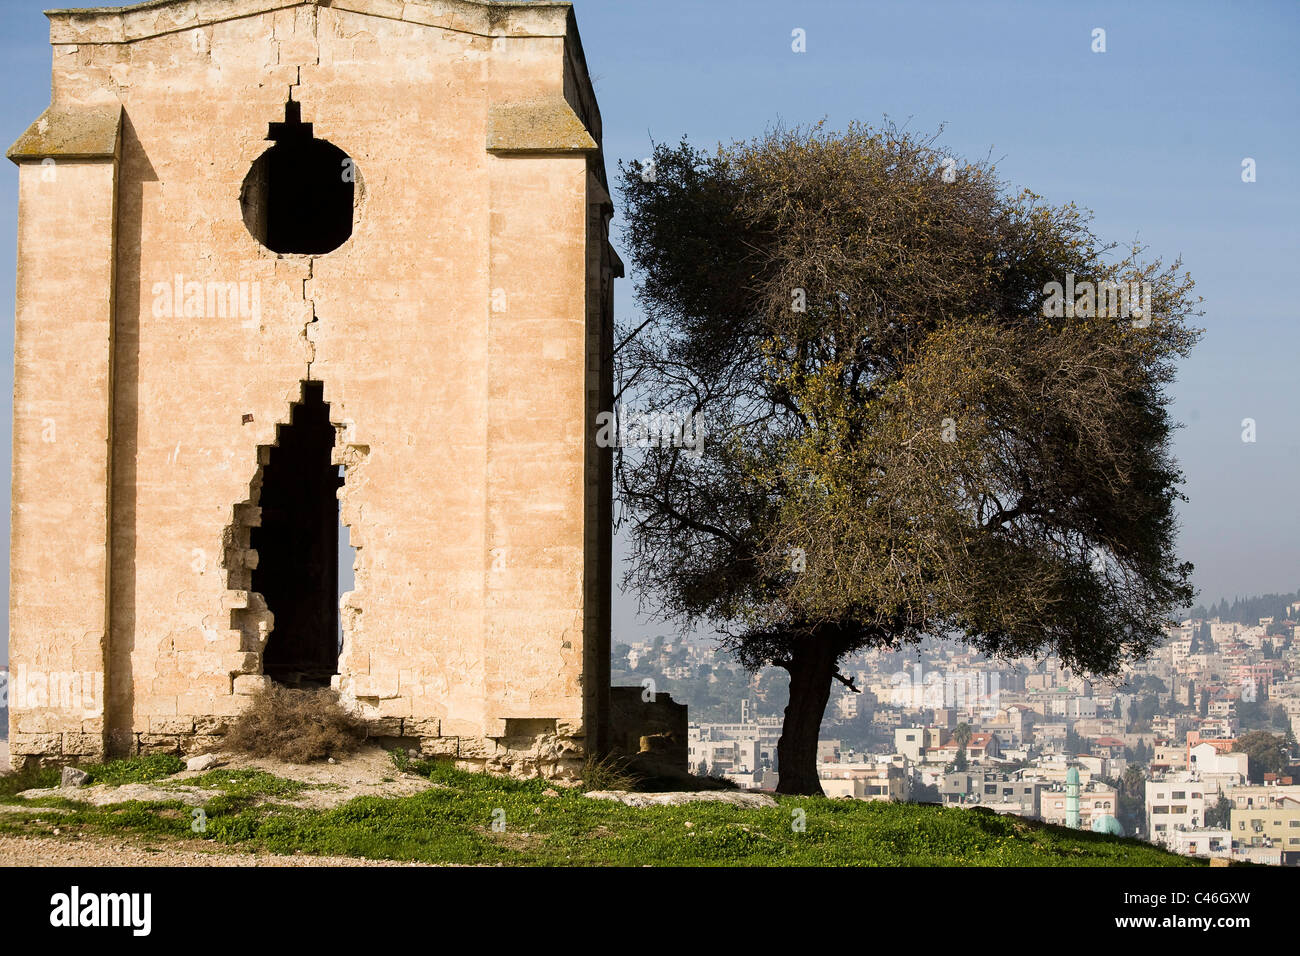 Photograph of the ruined church of Mary's fear near the city of Nazareth in the Lower Galilee - Stock Image